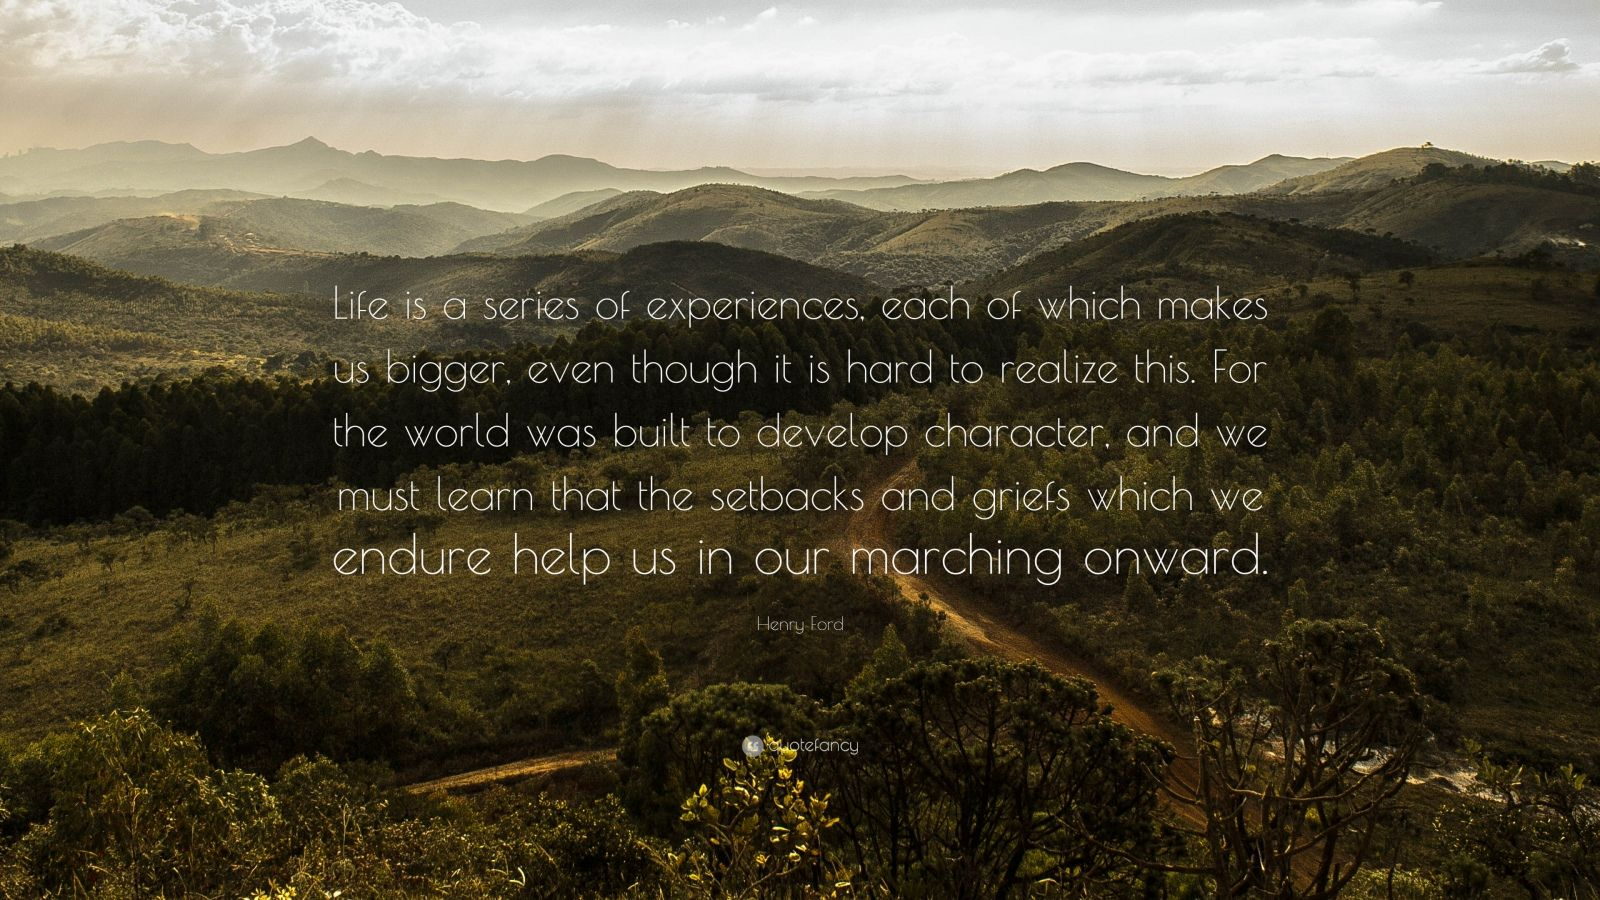 """Henry Ford Quote: """"Life is a series of experiences, each of which makes us bigger, even though it is hard to realize this. For the world was built to develop character, and we must learn that the setbacks and griefs which we endure help us in our marching onward."""""""